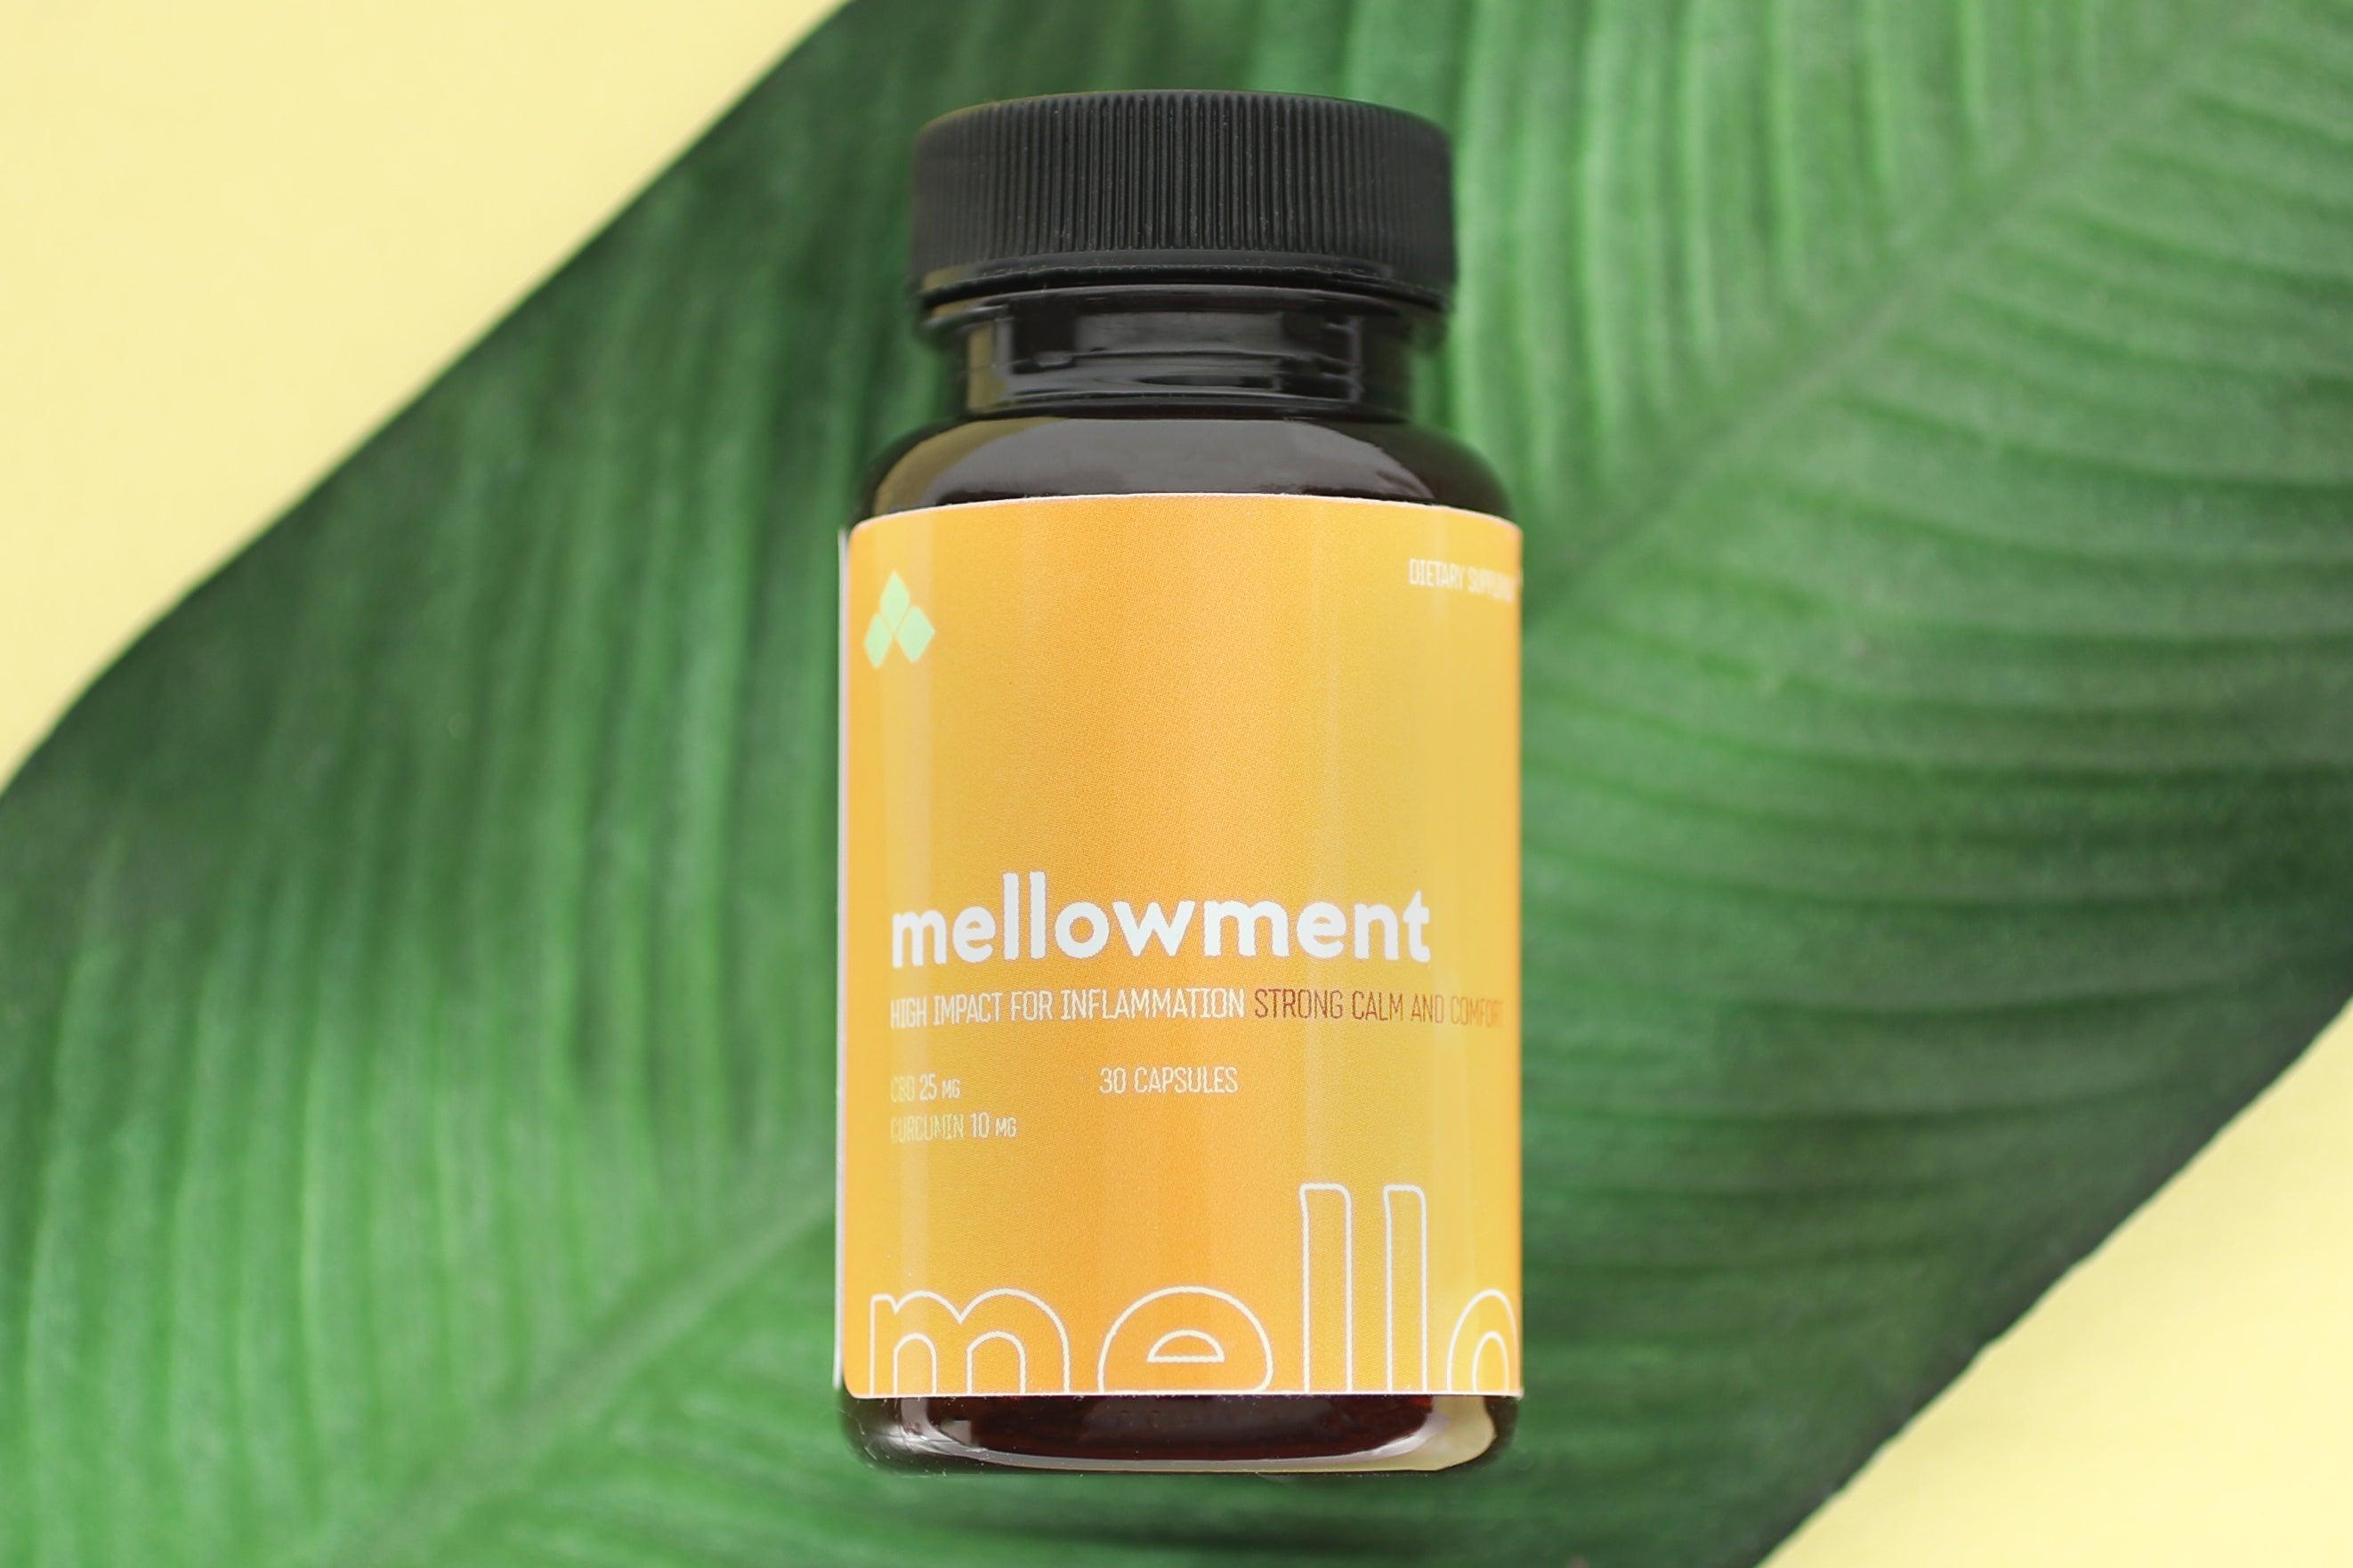 CBD Supplement (8 styles) - Photography and Web Design - Los Angeles, US based Shopify Experts Revo Designs